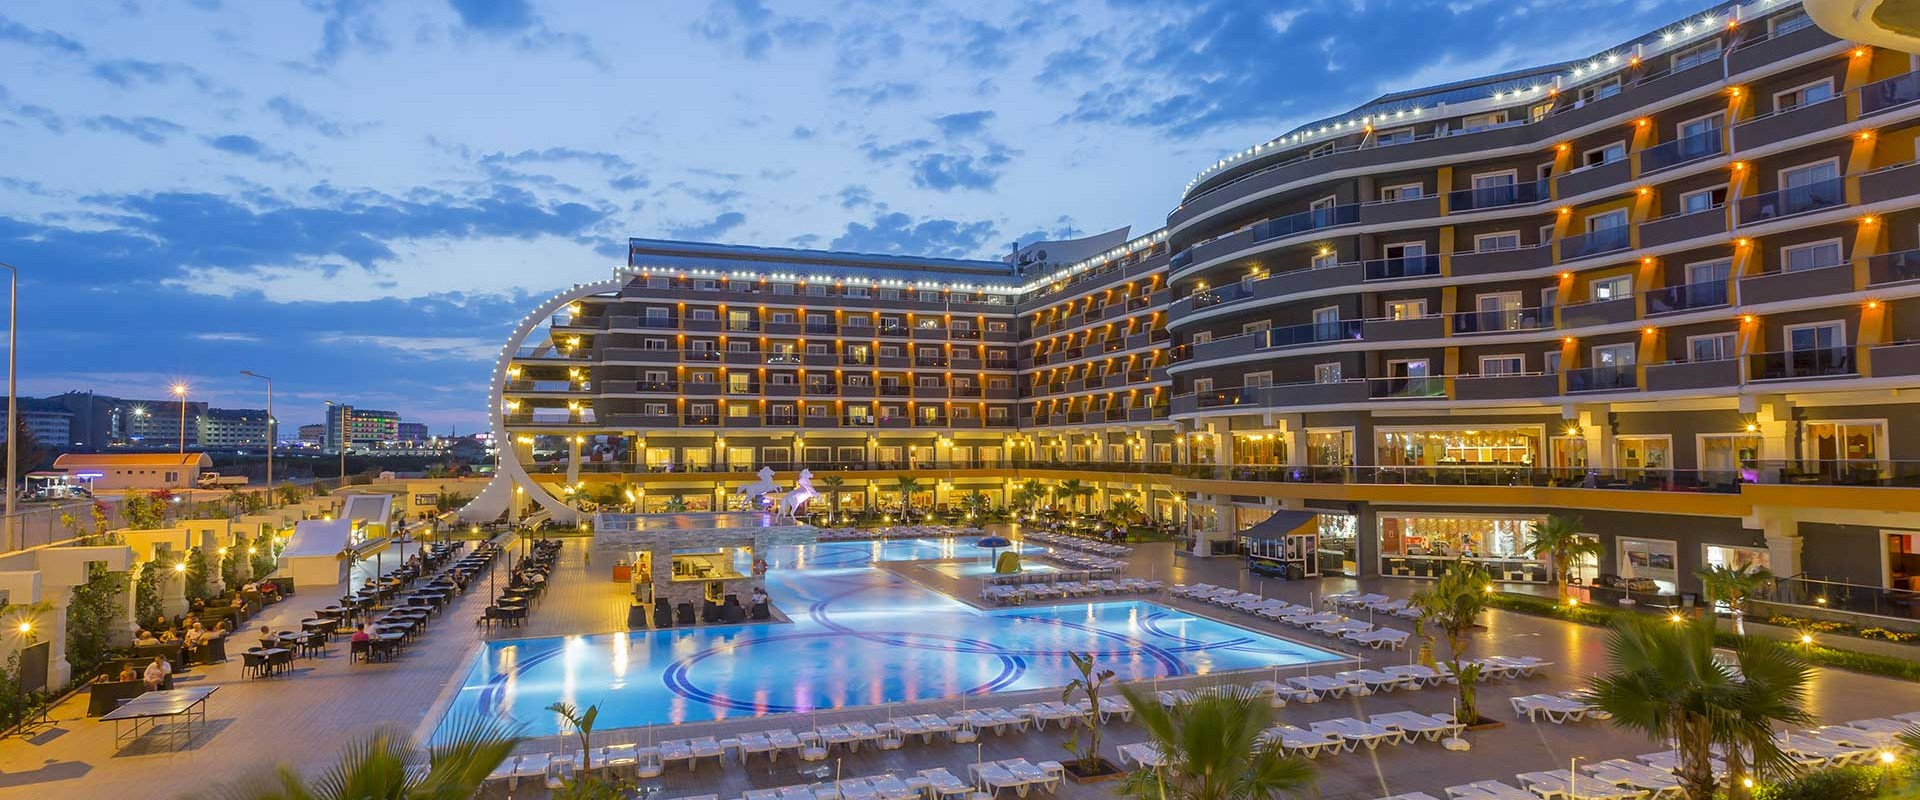 Turcia, Alanya, Hotel Senza The Inn Resort & Spa